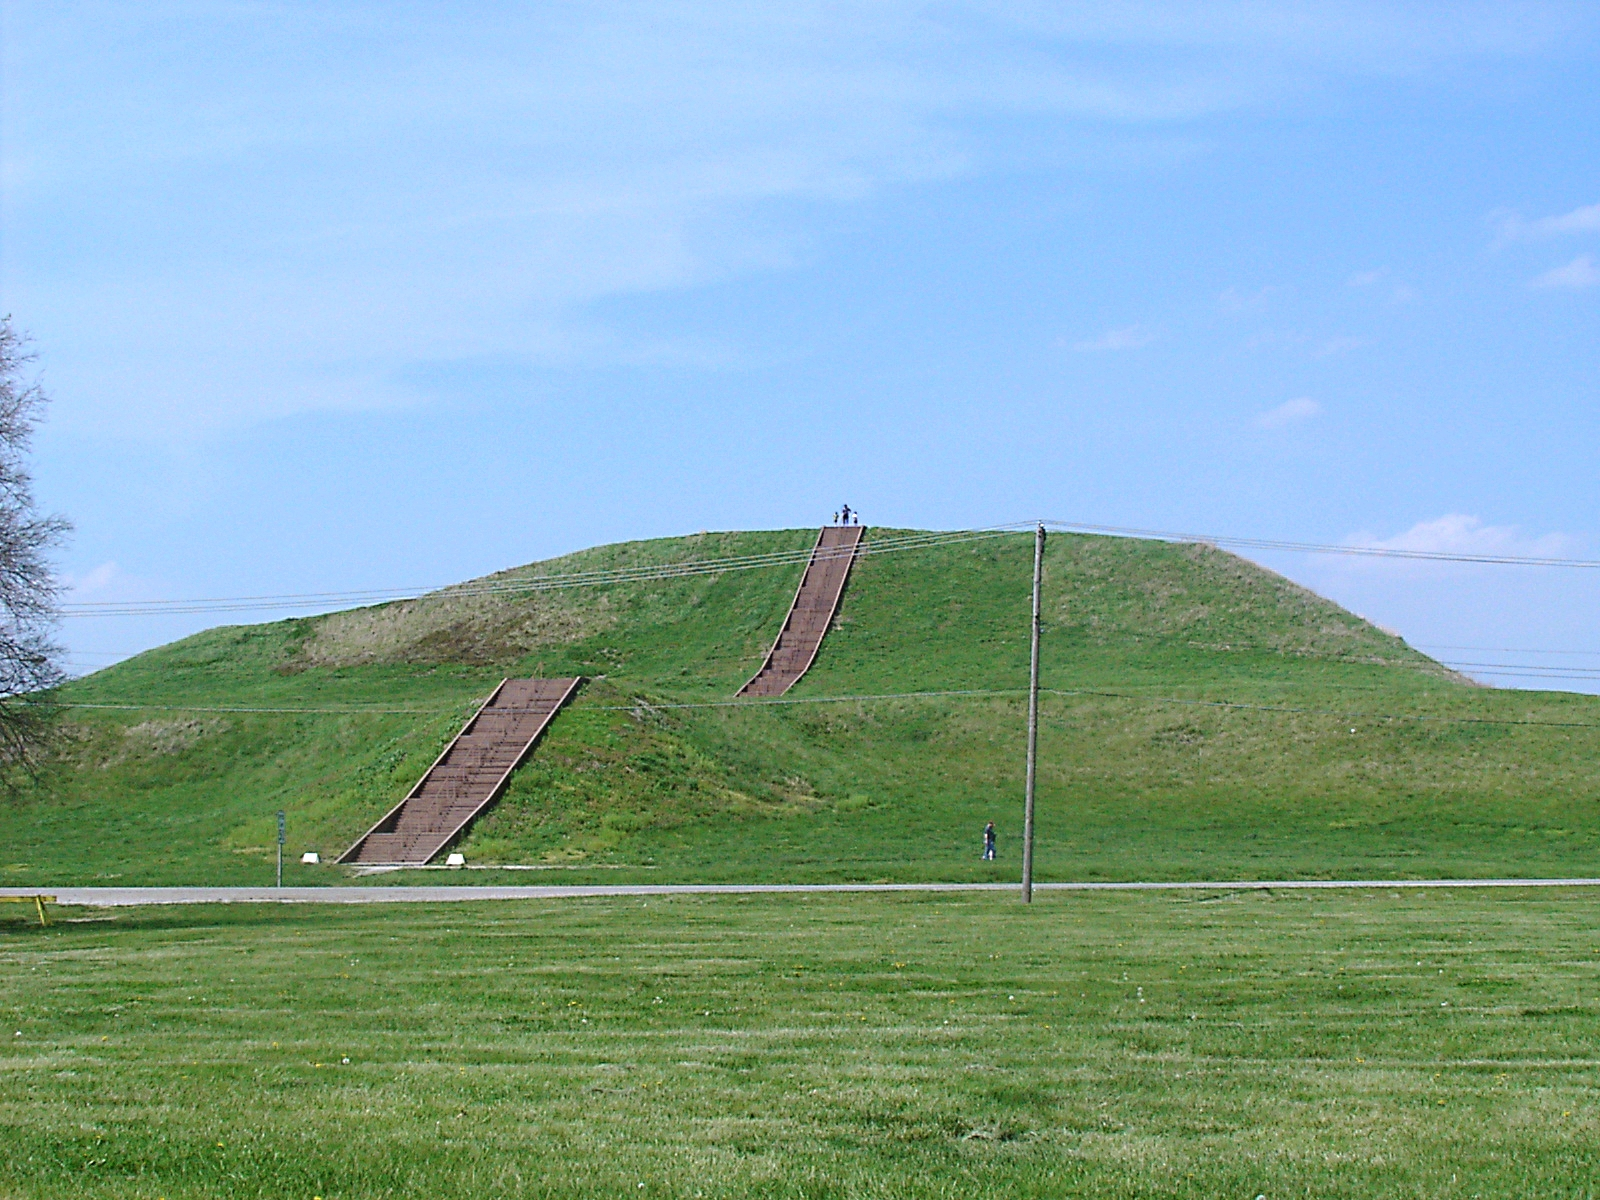 http://upload.wikimedia.org/wikipedia/commons/2/2d/Monks_Mound_in_July.JPG